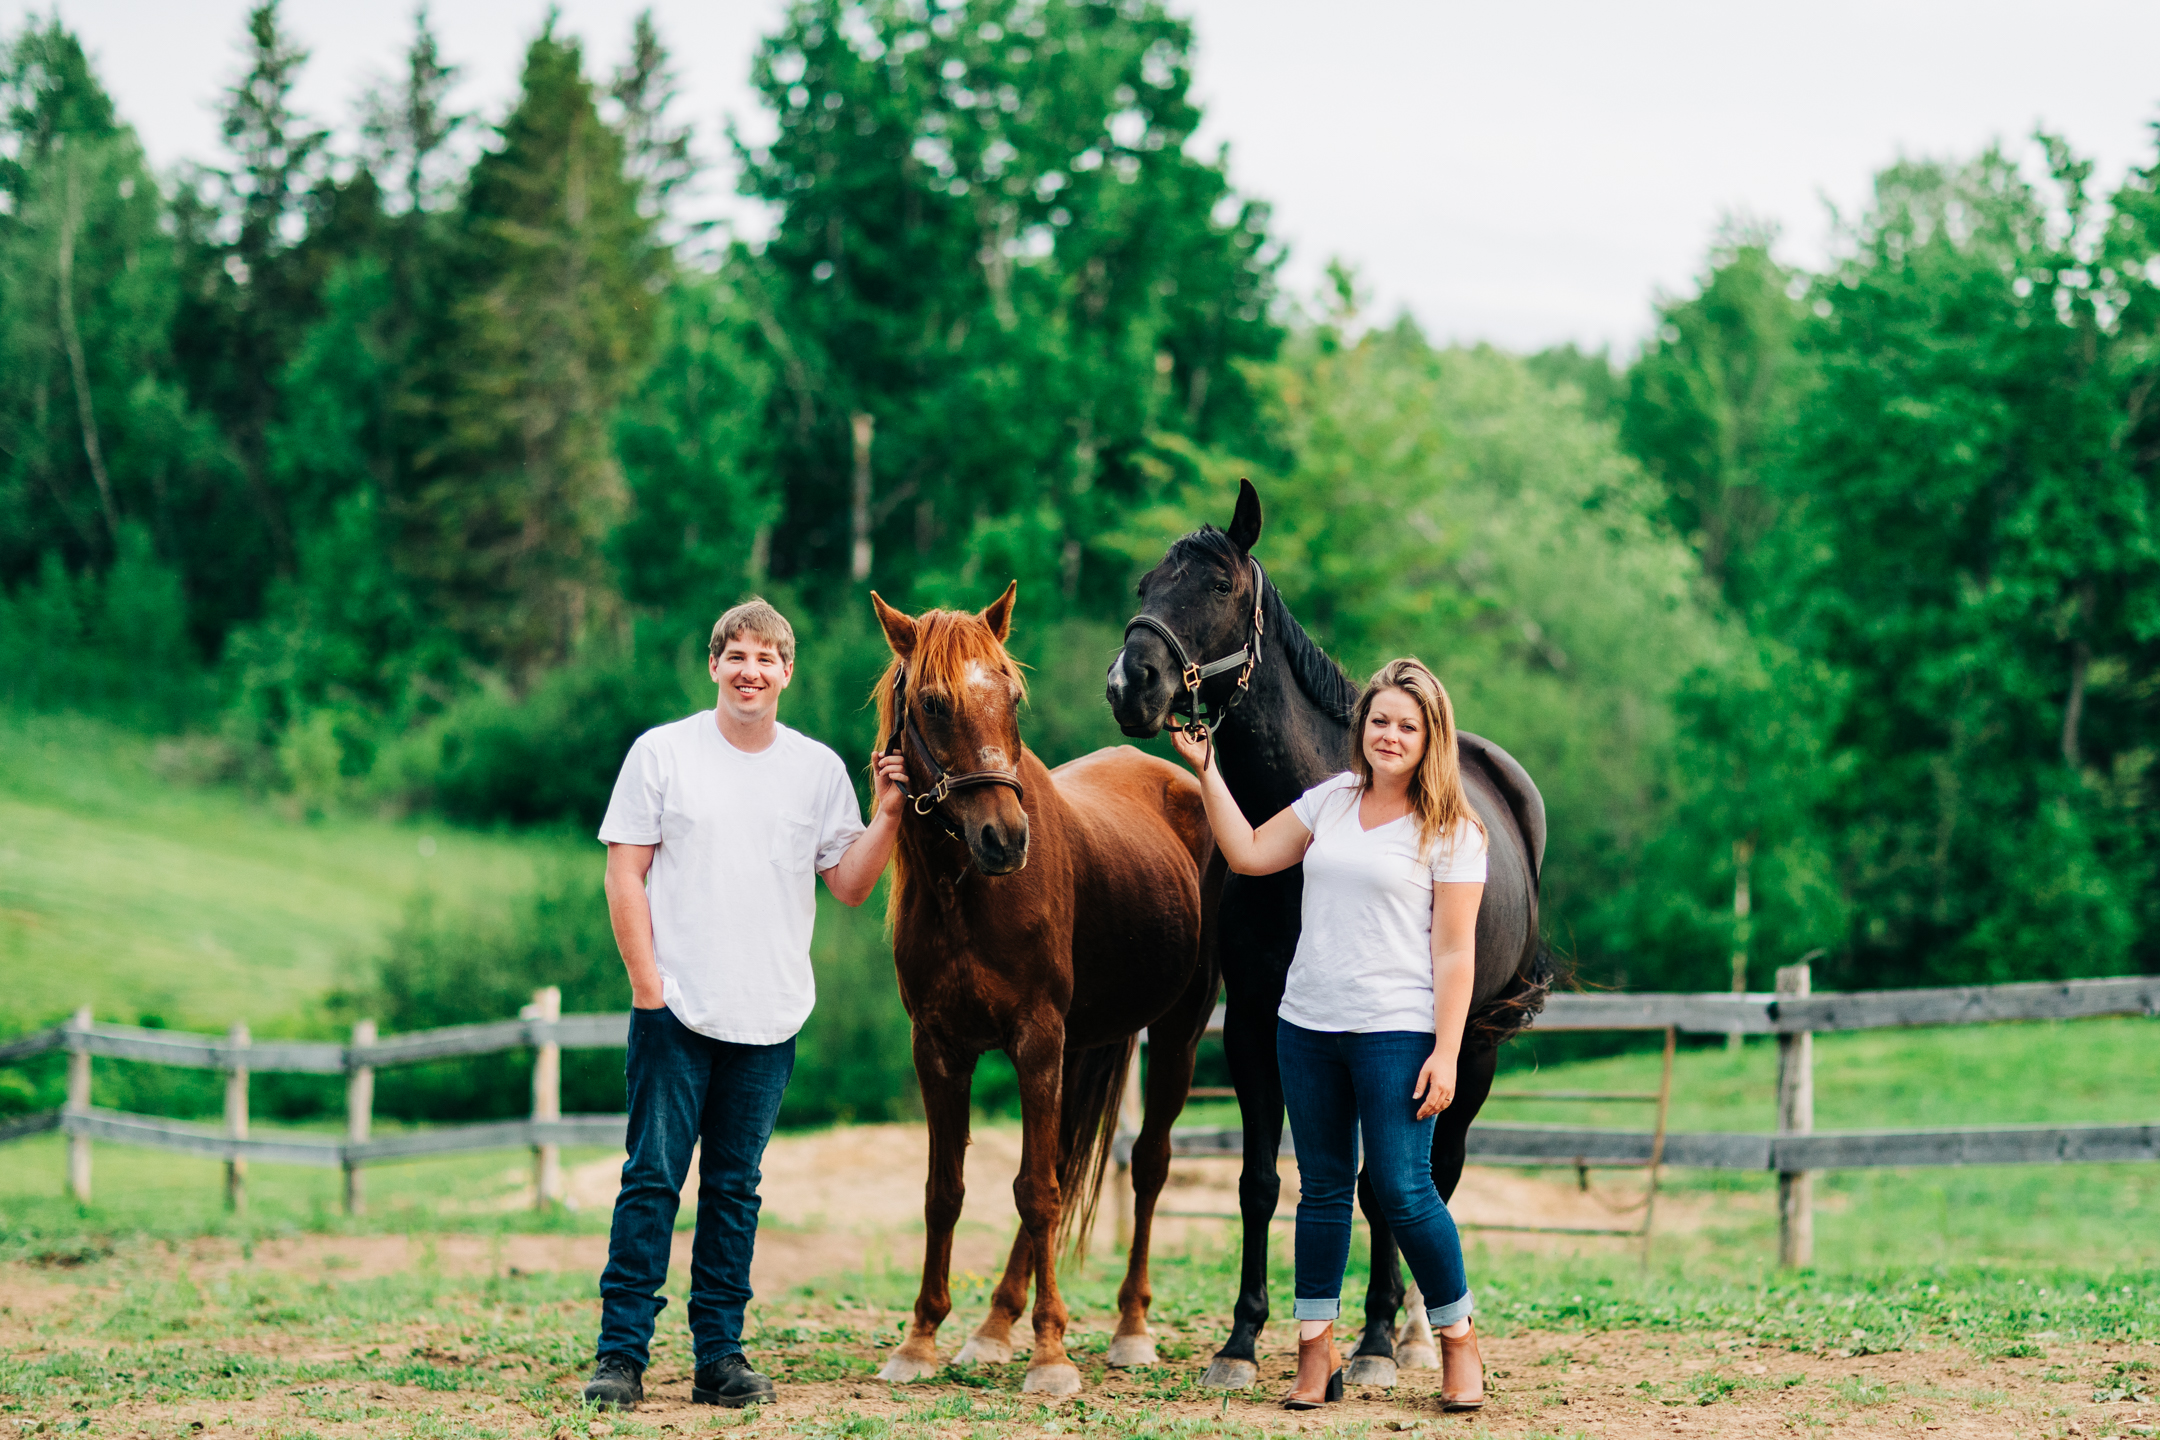 Brea & Cody Engagement Session - Summer 2019